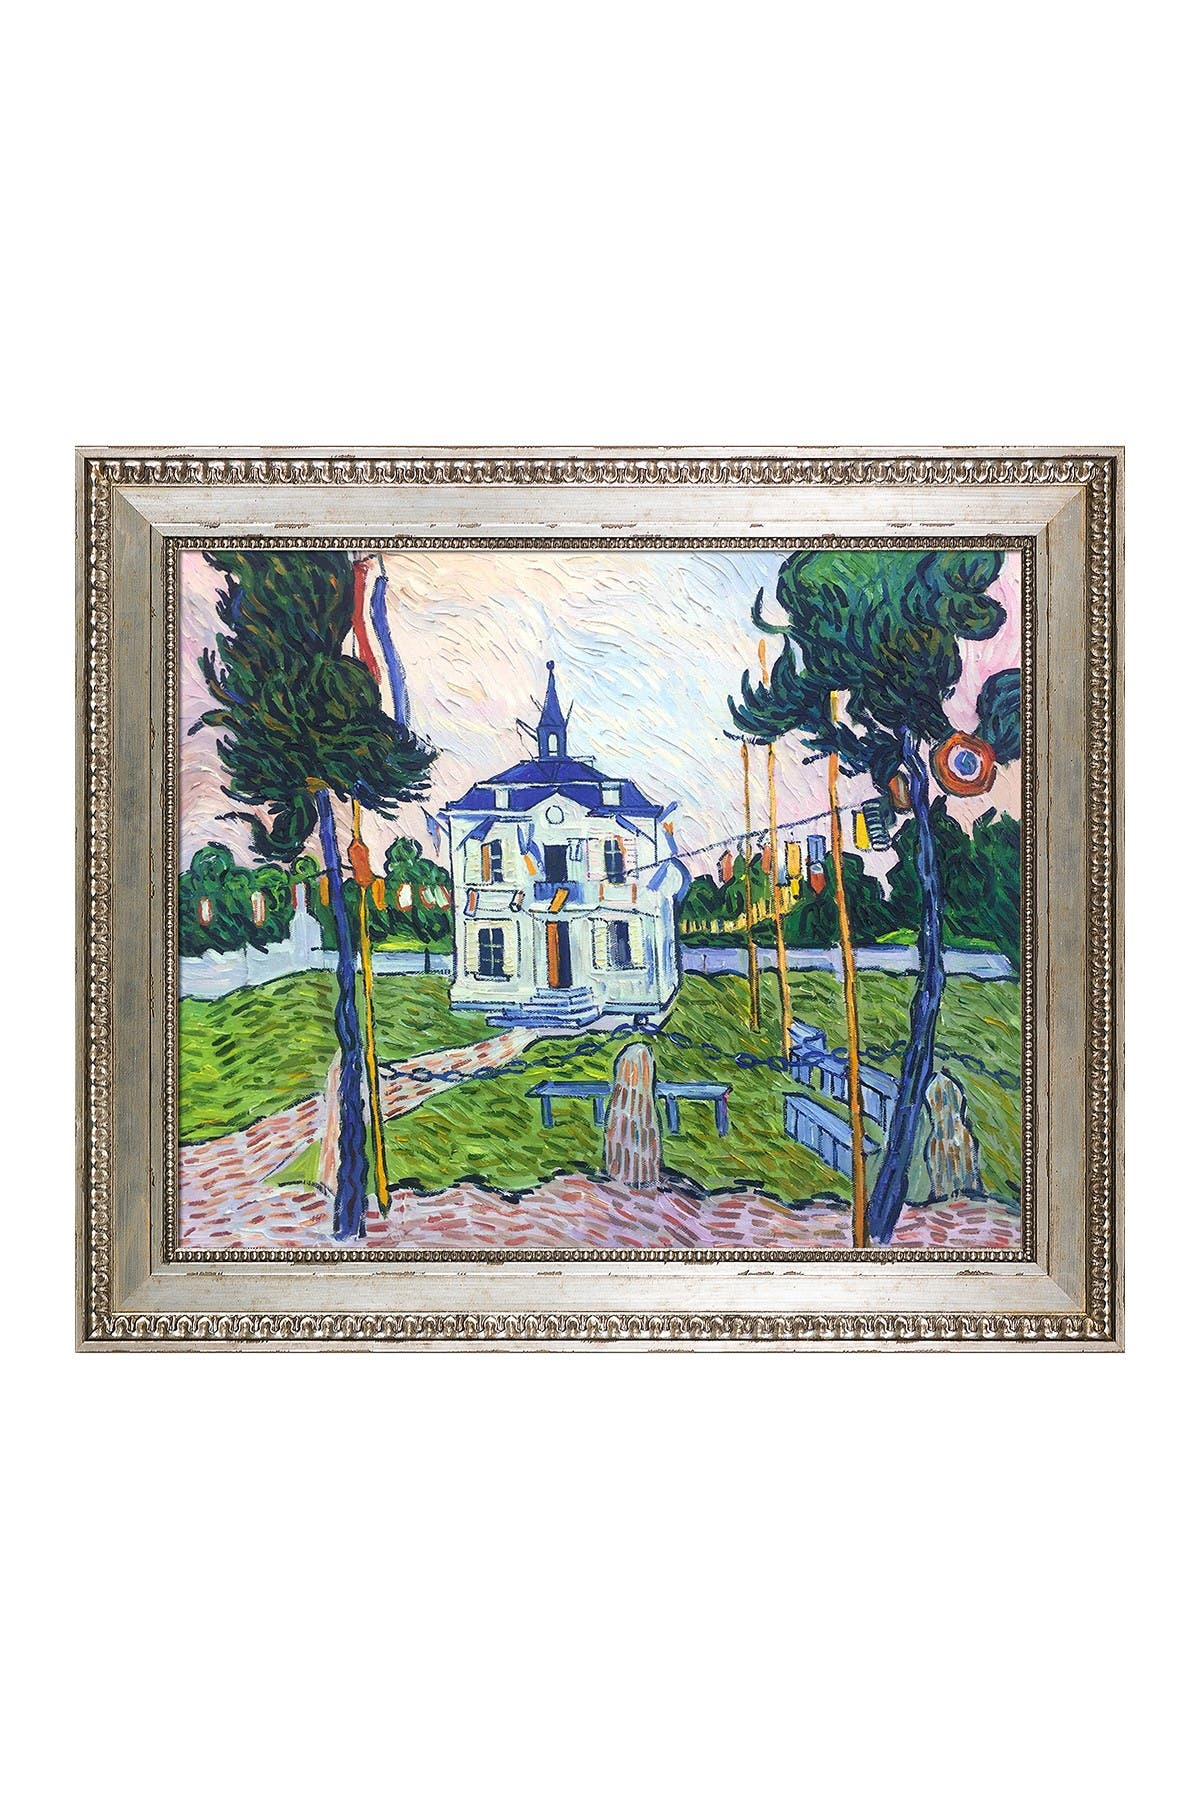 Auvers Town Hall in 14 July Framed Oil Reproduction of an Original Painting by Vincent Van Gogh at Nordstrom Rack